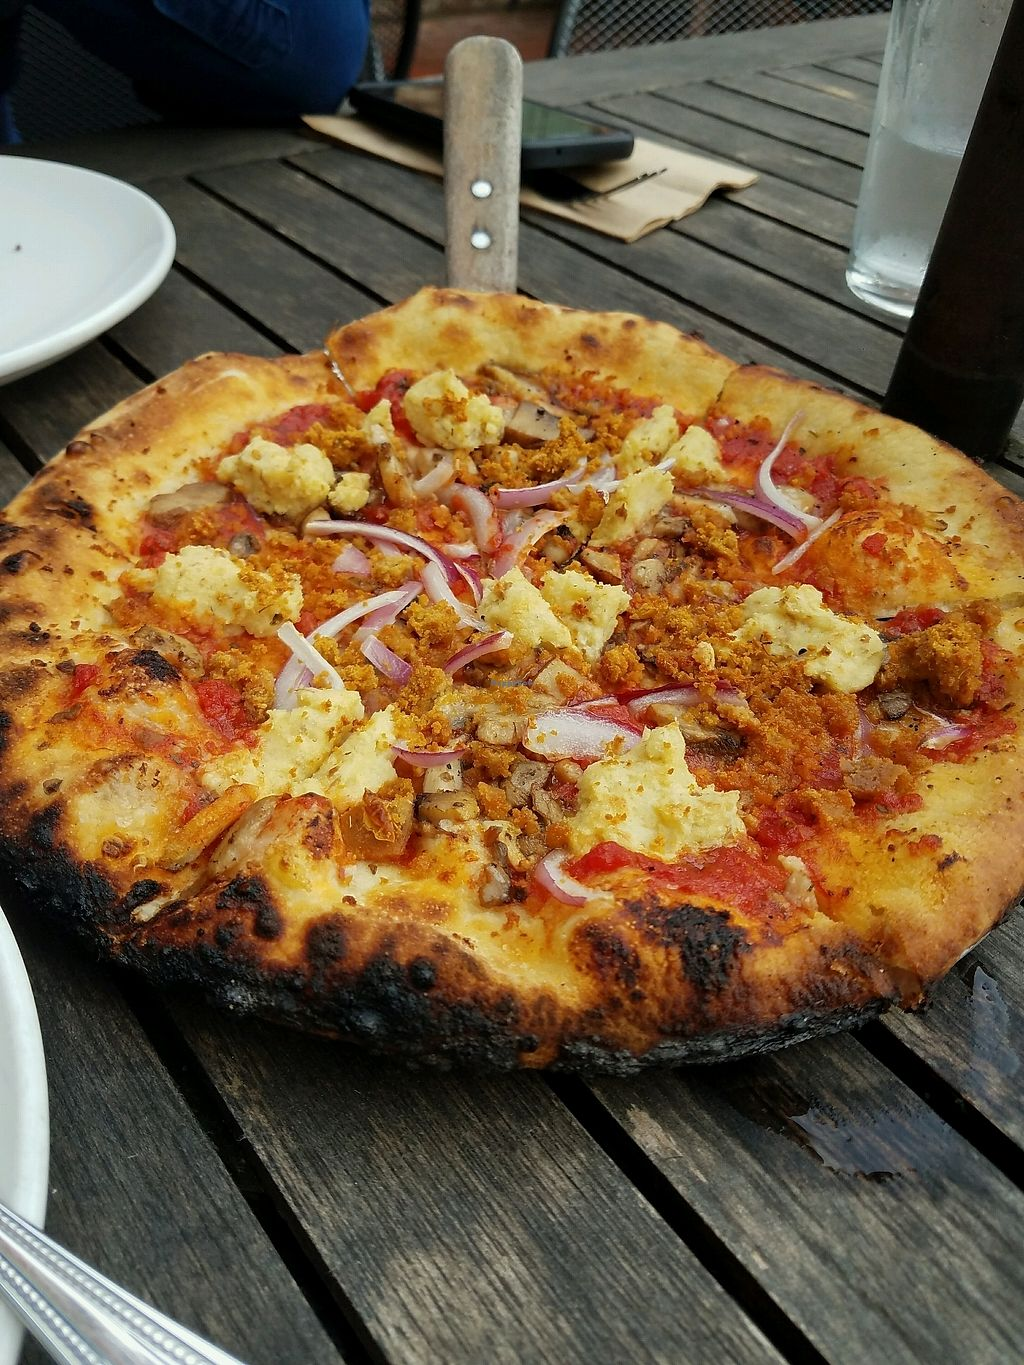 "Photo of Harvest Pizzeria  by <a href=""/members/profile/Silly%20Little%20Vegan"">Silly Little Vegan</a> <br/>Vegan sausage and cashew cheese pizza <br/> March 11, 2018  - <a href='/contact/abuse/image/81773/369396'>Report</a>"